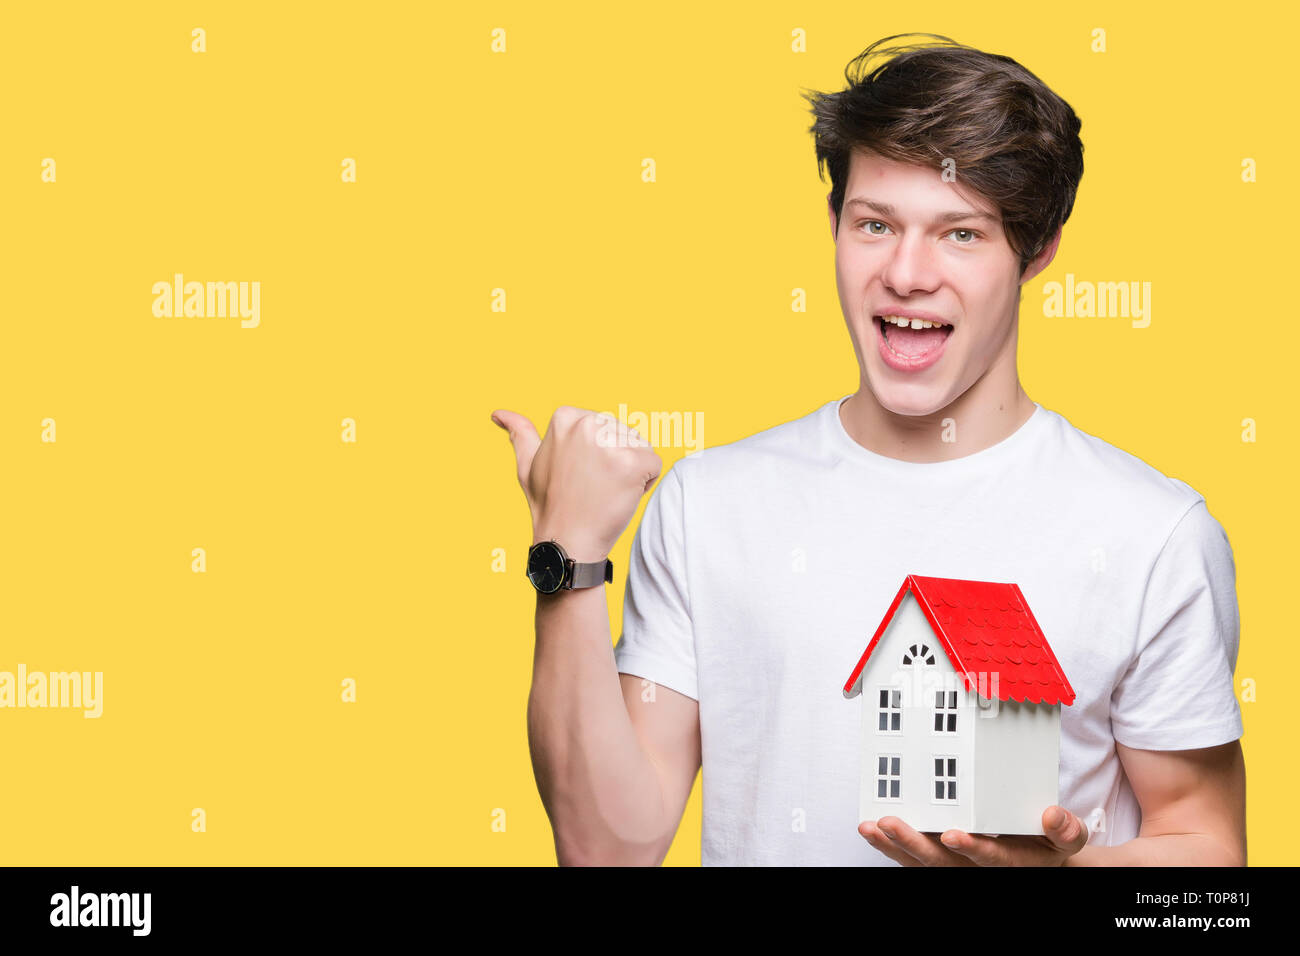 Young man holding house over isolated background pointing and showing with thumb up to the side with happy face smiling - Stock Image